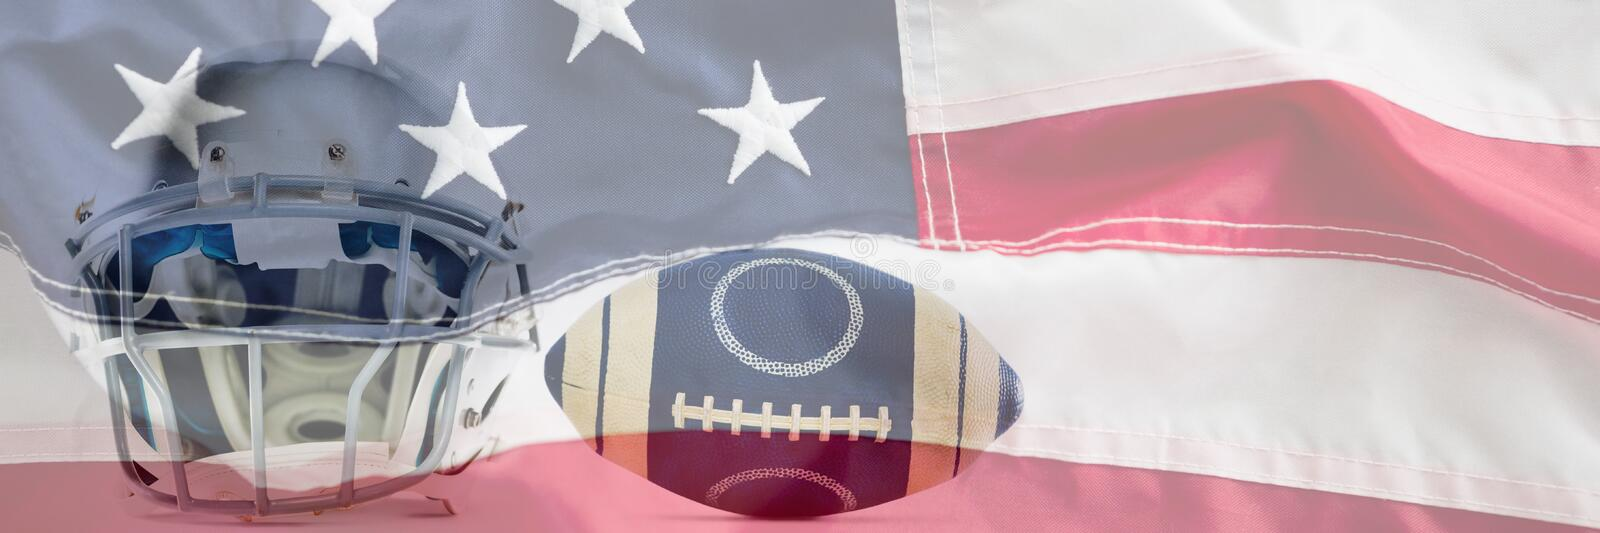 Composite image of sports helmet and american football. Sports helmet and American football against full frame of american flag stock photography